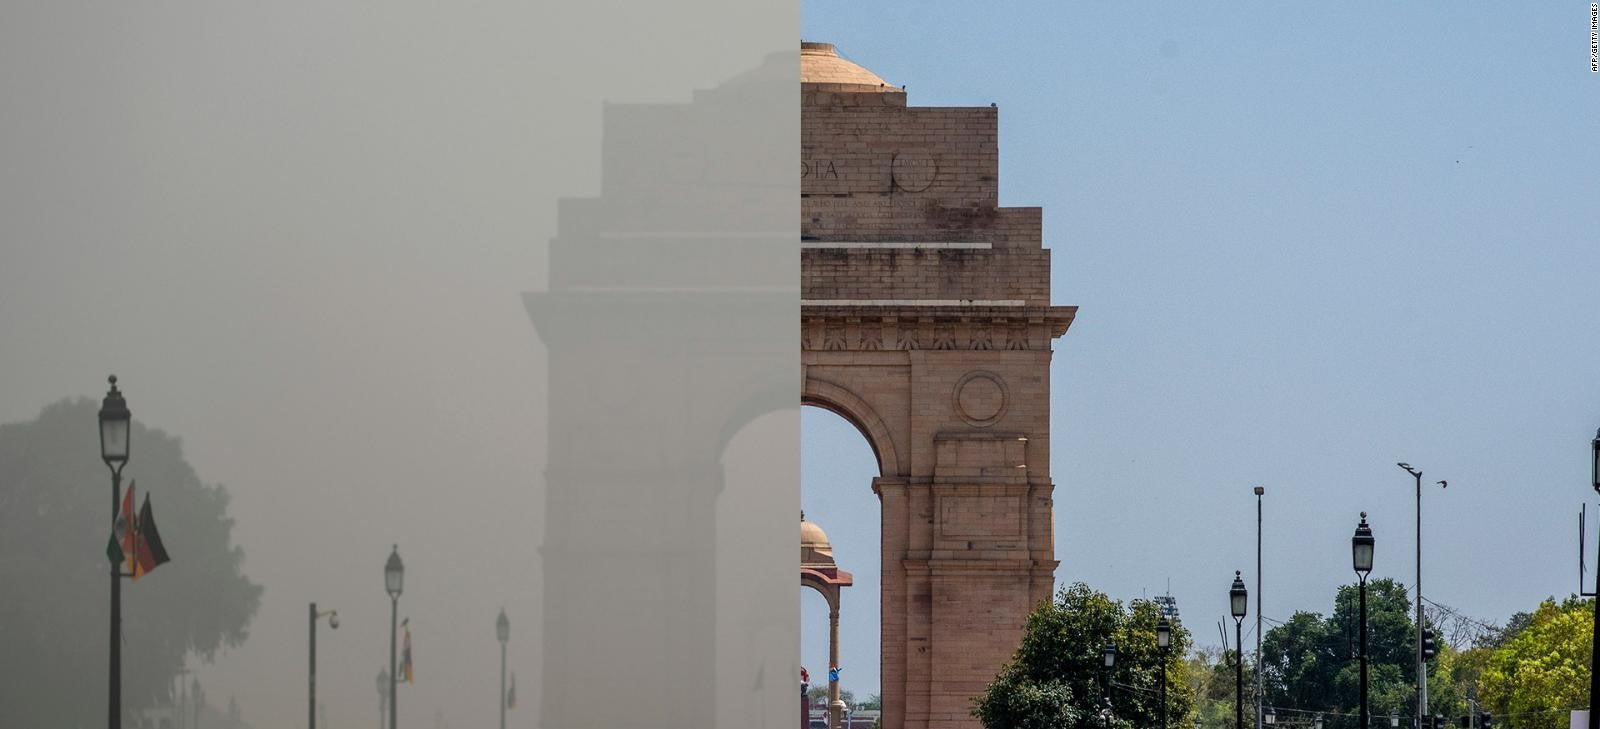 India before and after lockdown showing difference in air pollution levels clearly.